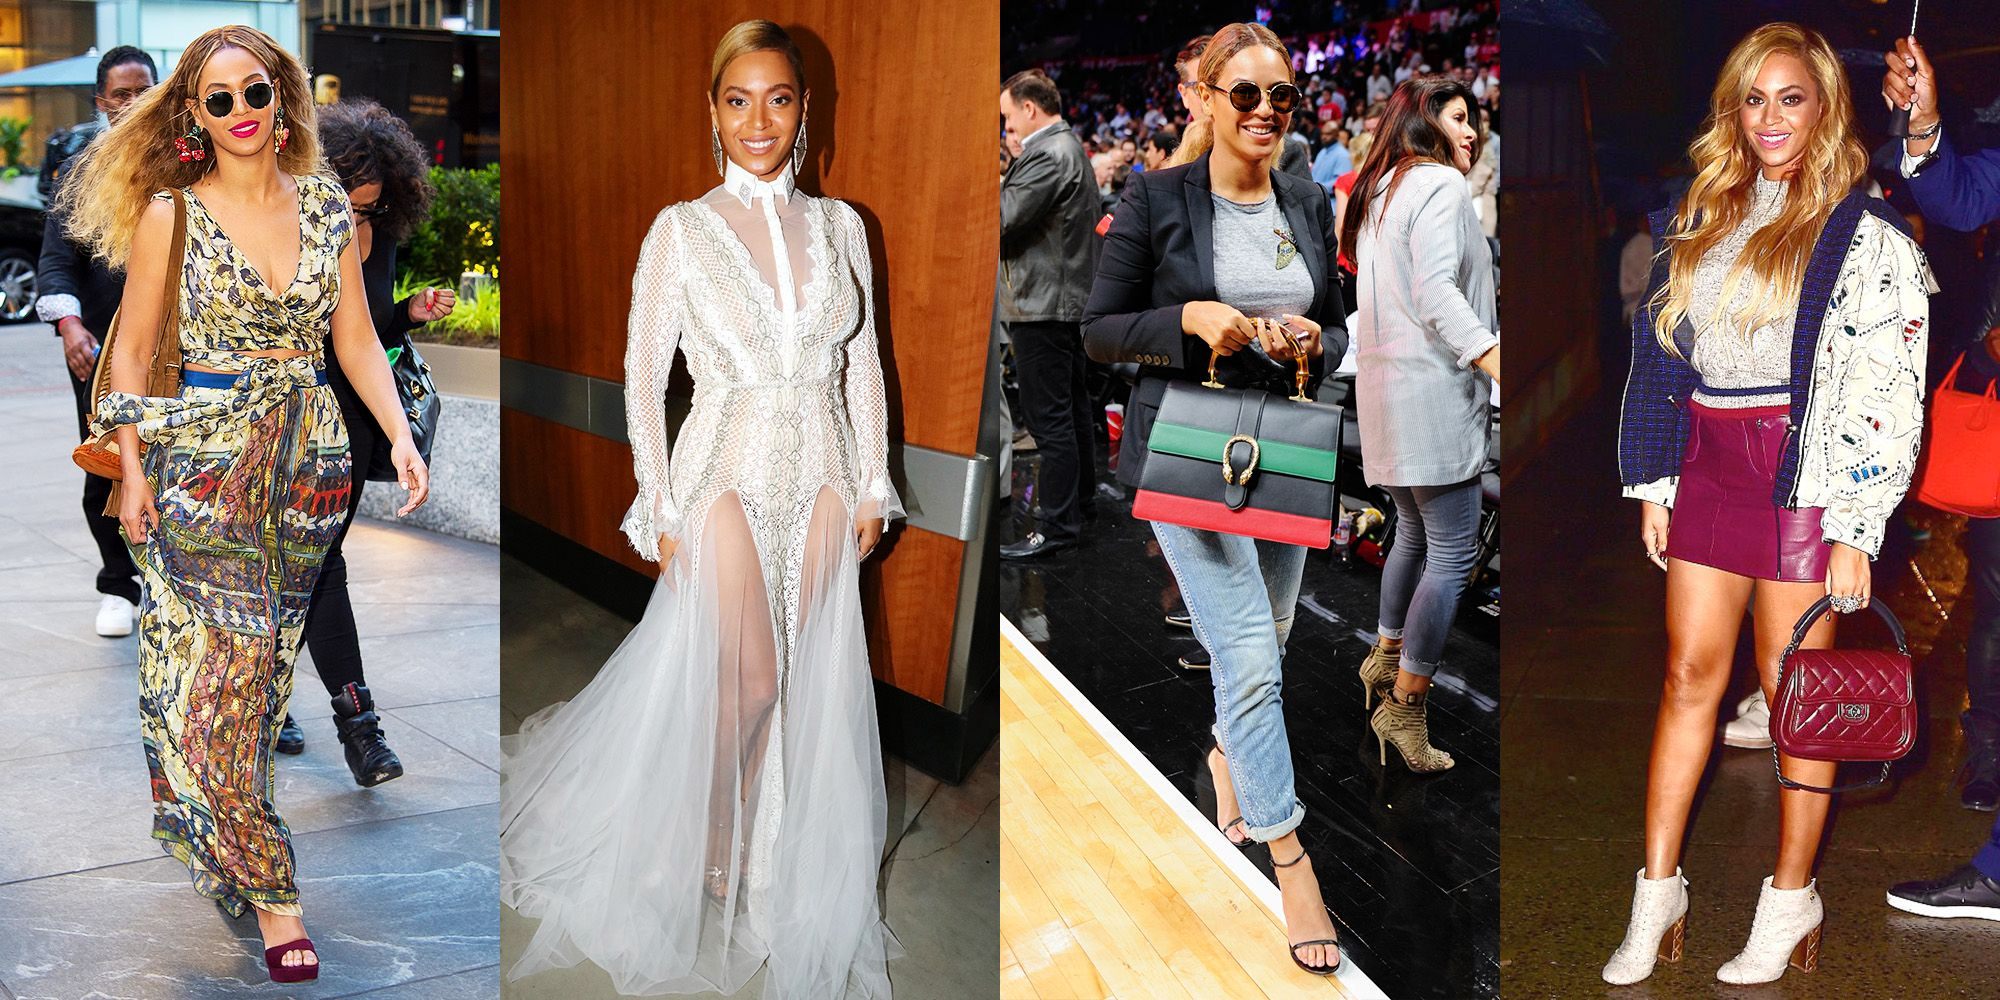 b3a61b17404 Beyonce s Best Style Moments - 50+ Best Beyoncé Knowles Fashion Moments